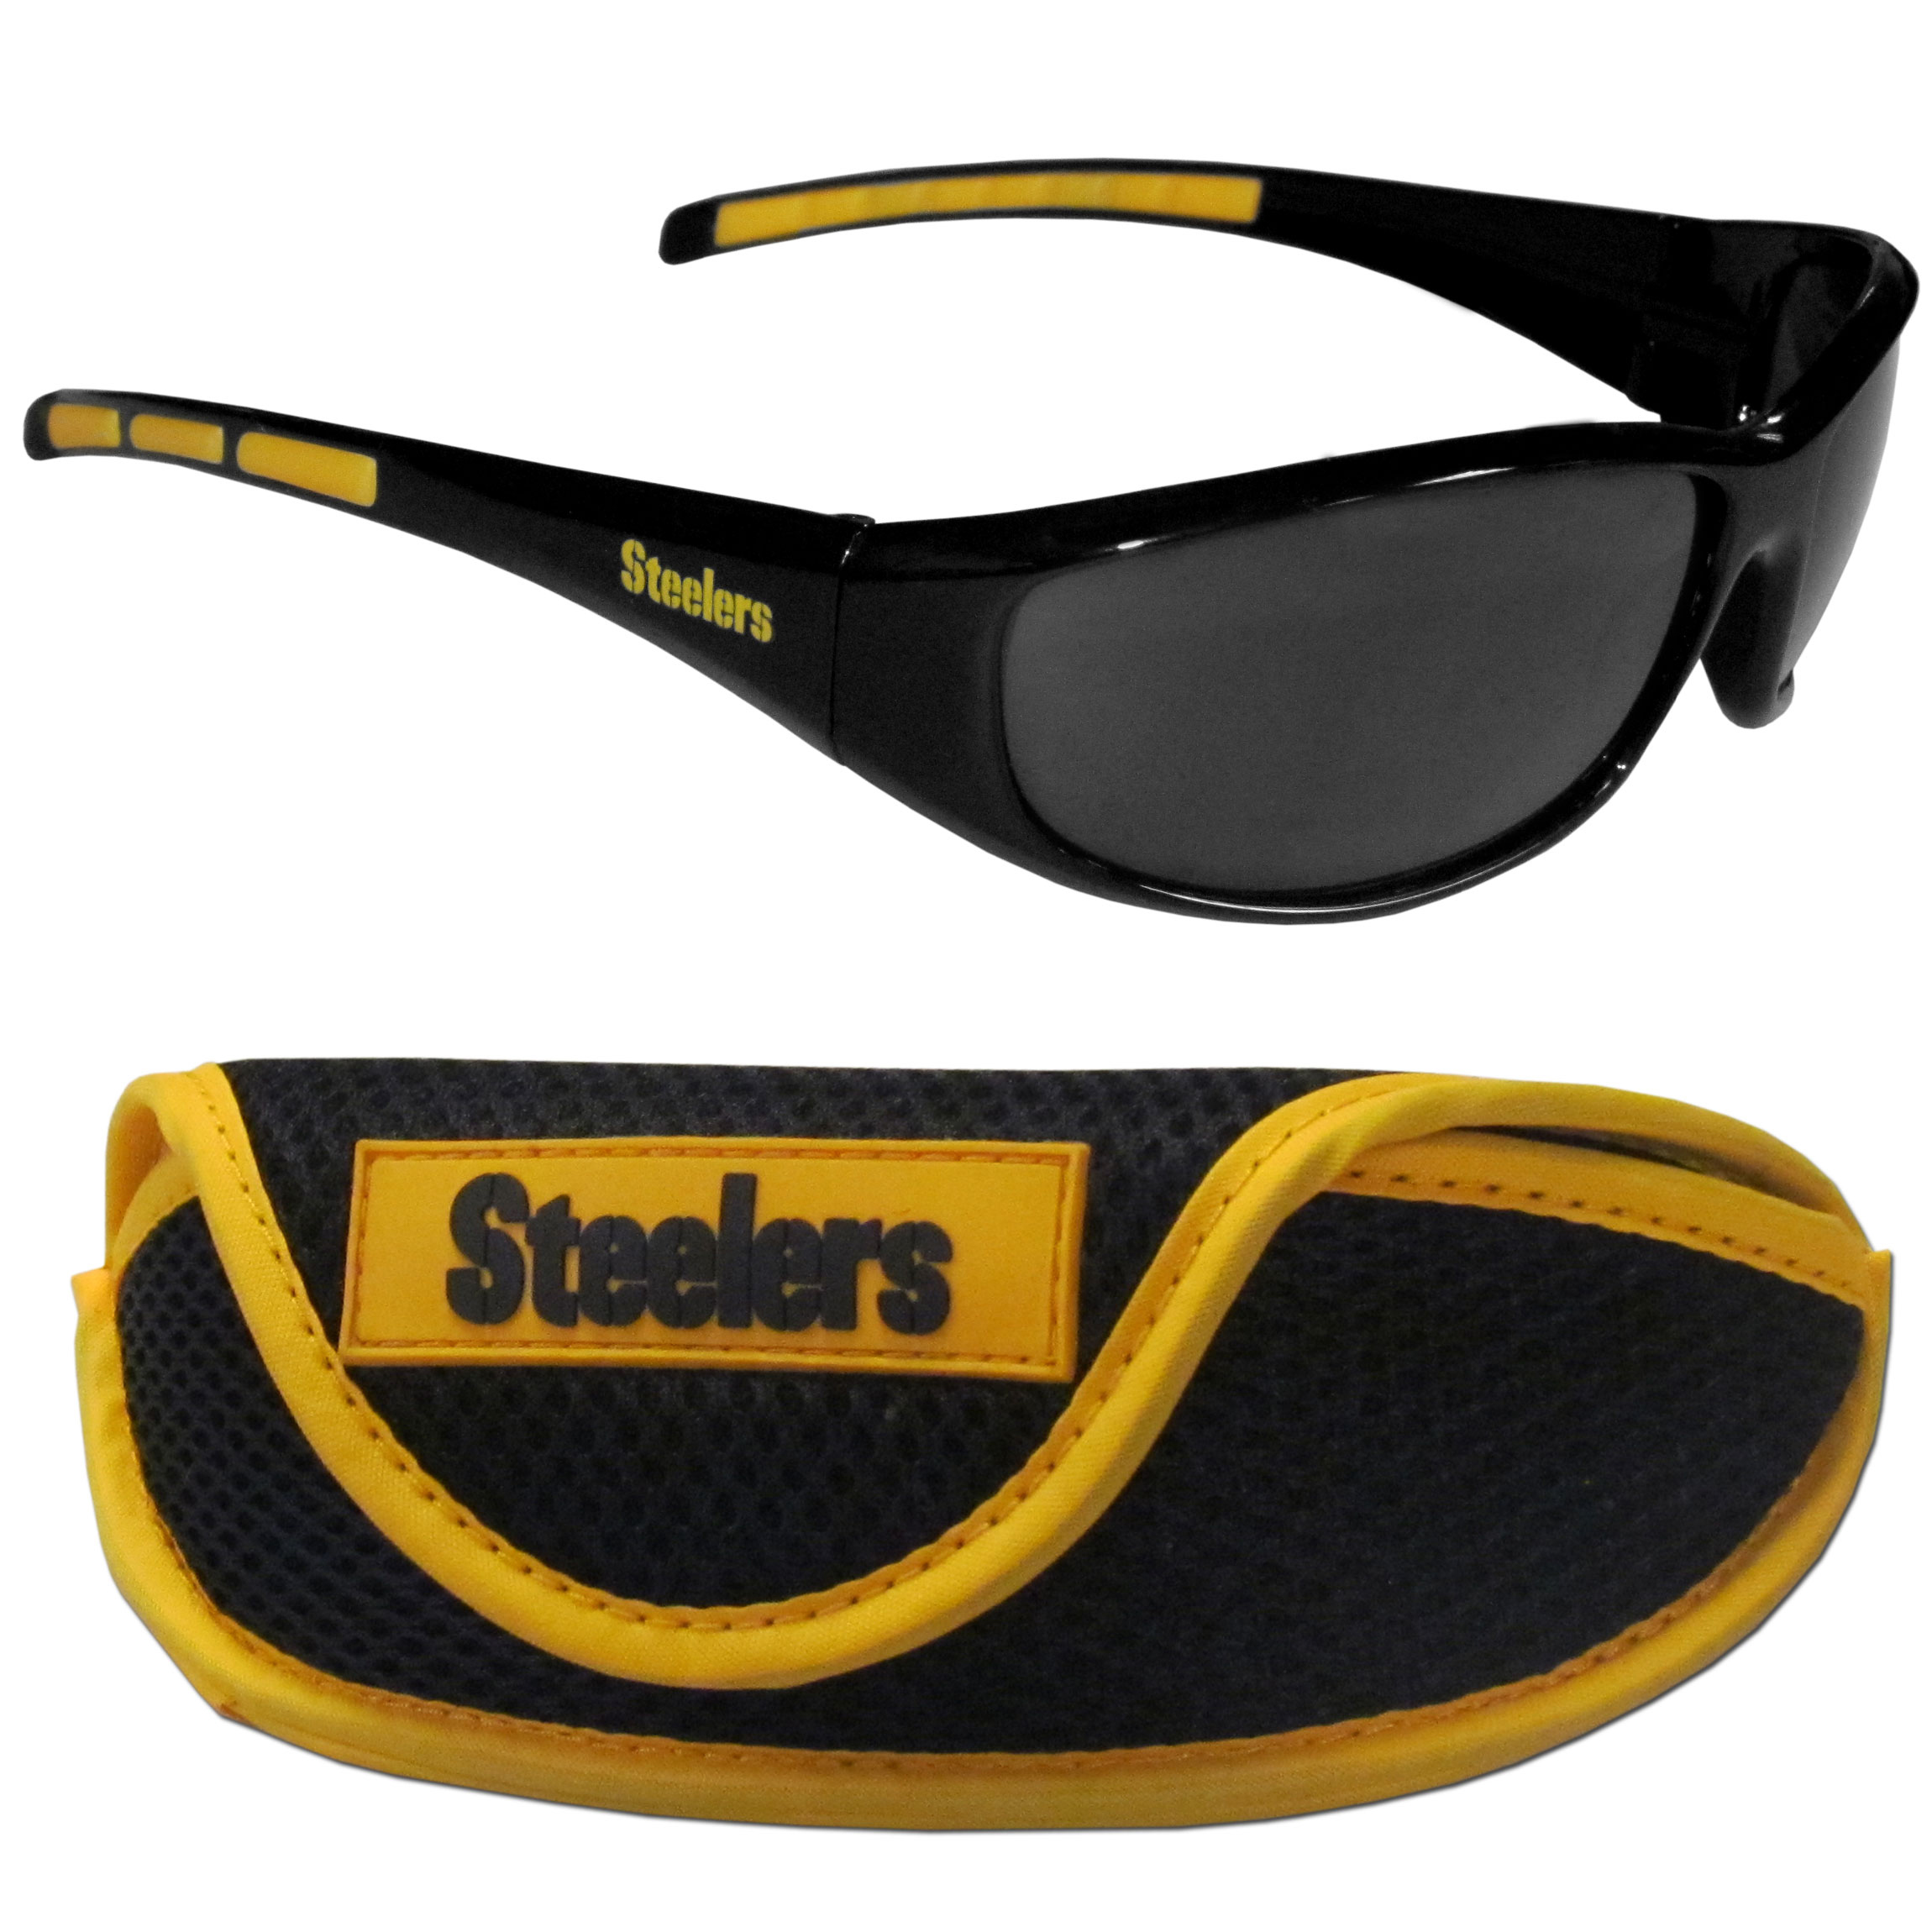 Pittsburgh Steelers Wrap Sunglass and Case Set - This great set includes a high quality pair of Pittsburgh Steelers wrap sunglasses and sport carrying case.